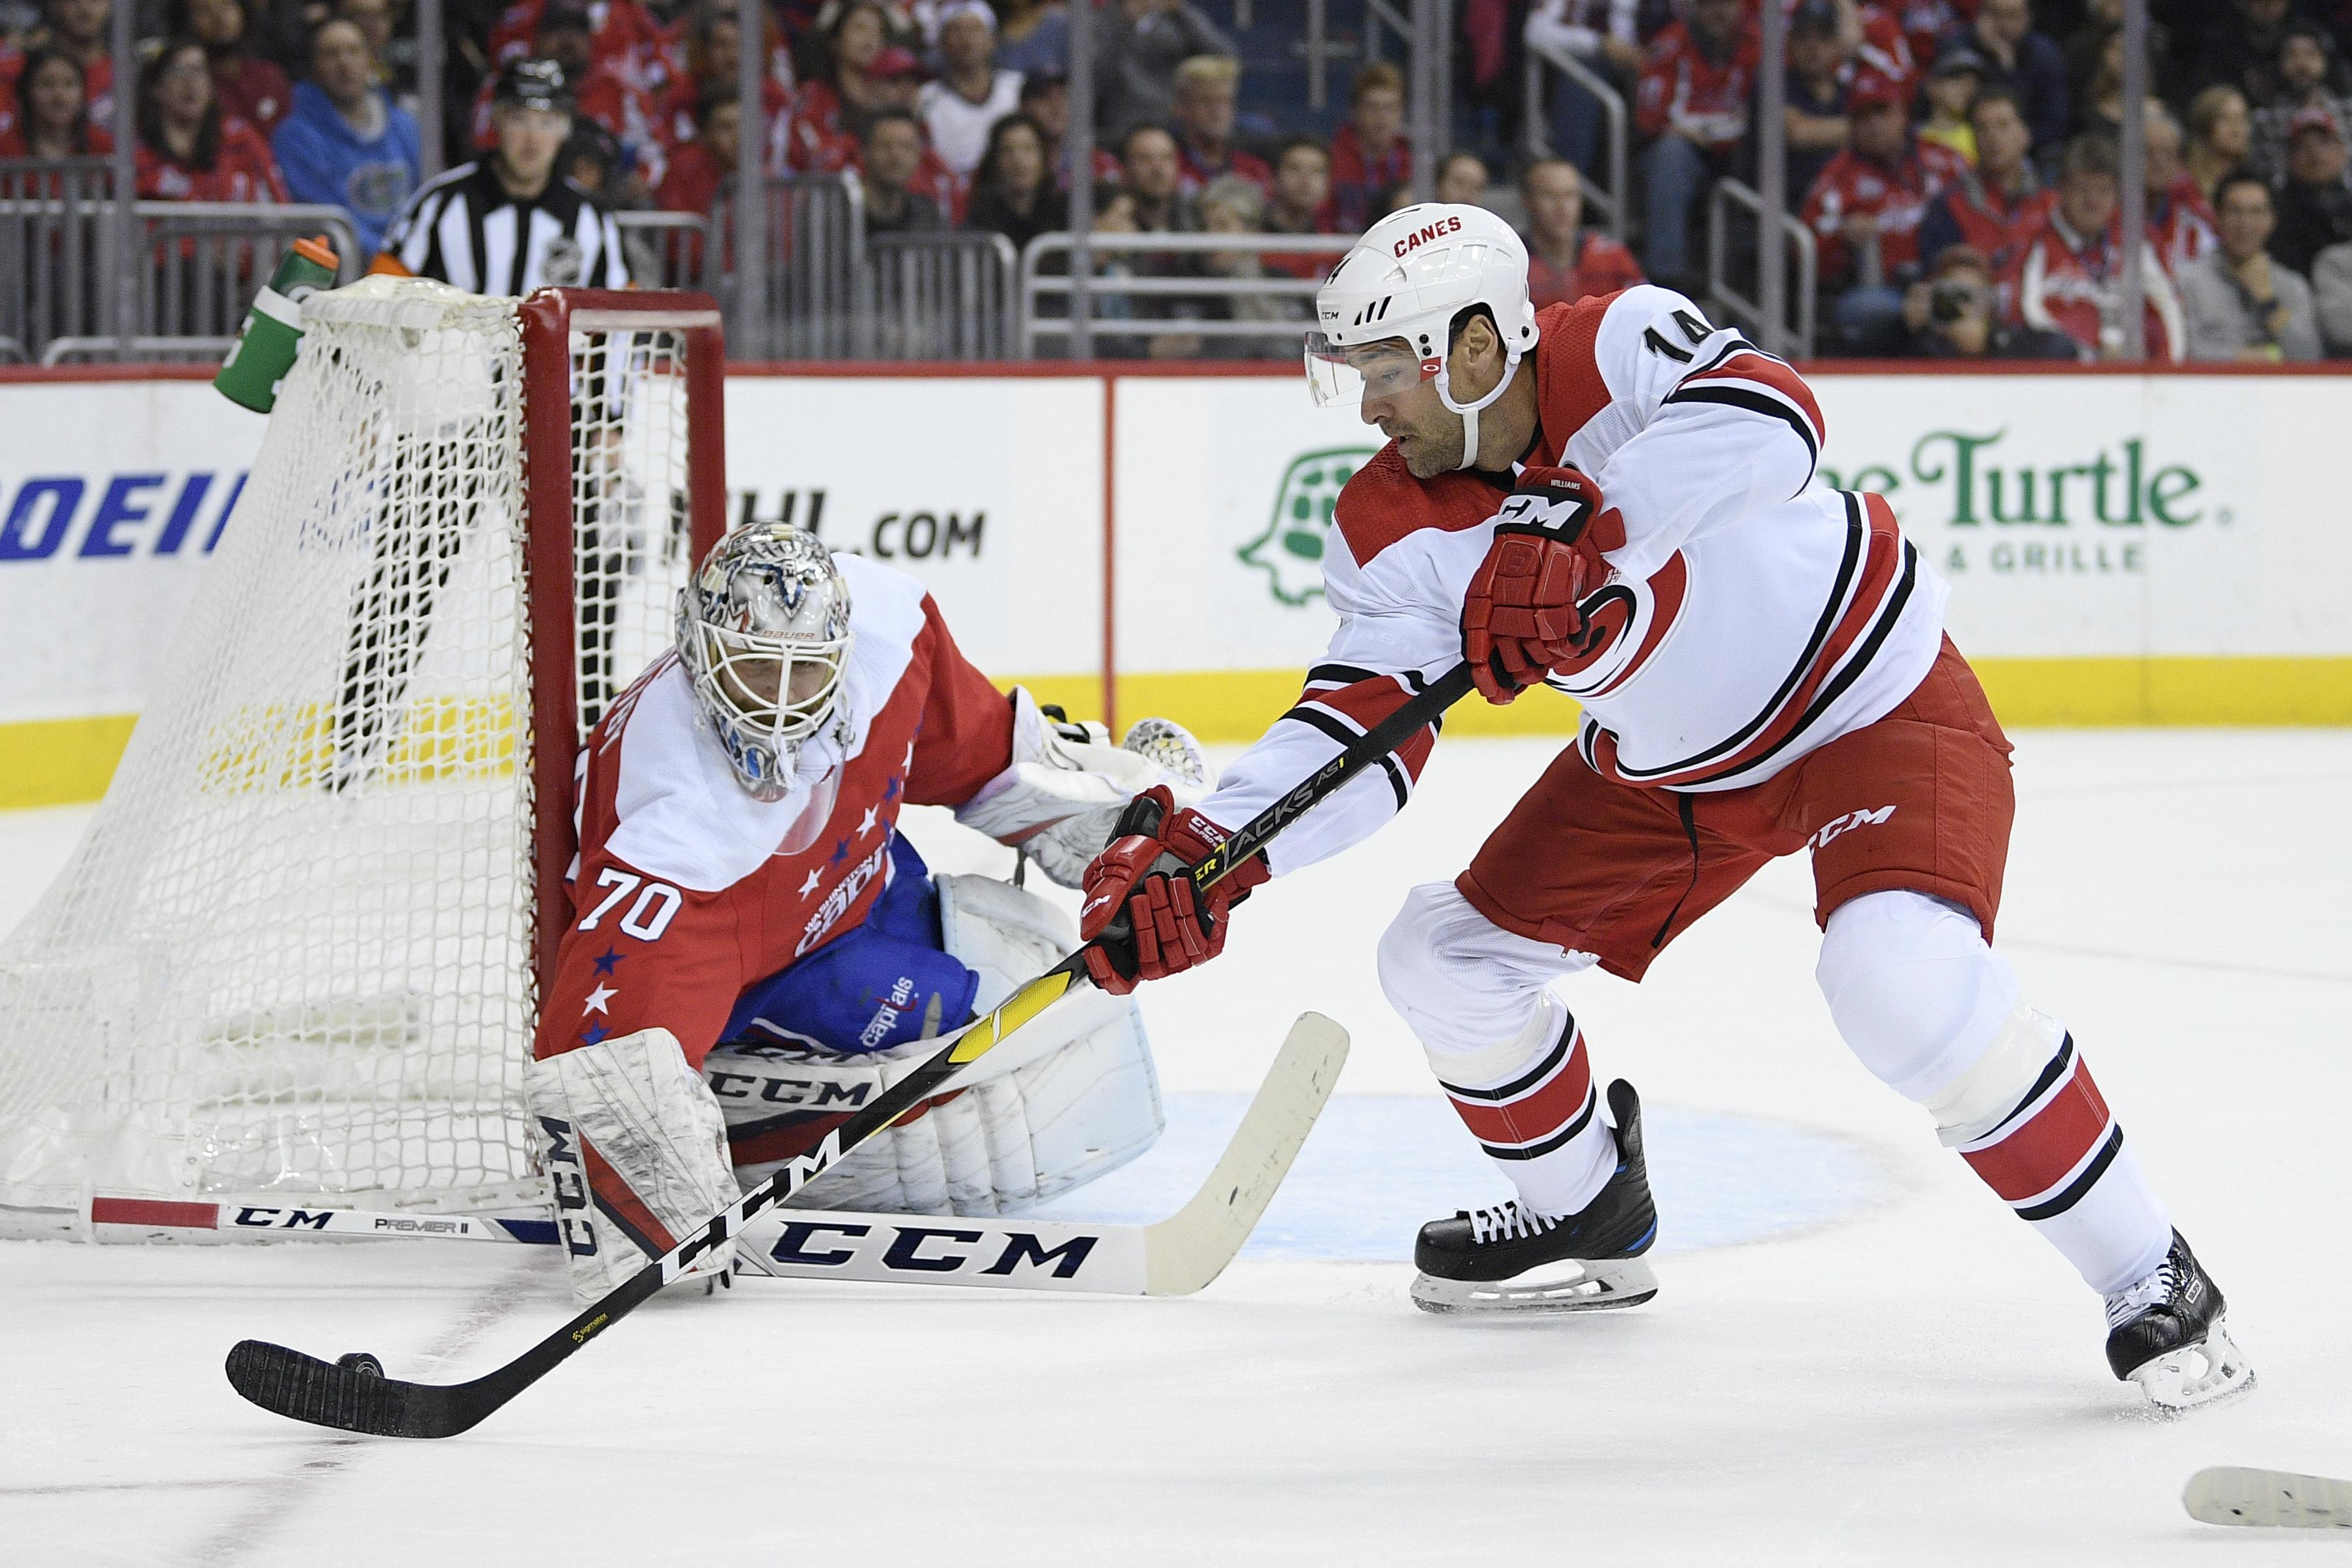 f7d9e309489 Capitals' old friend Justin Williams becomes the enemy in Hurricanes ...